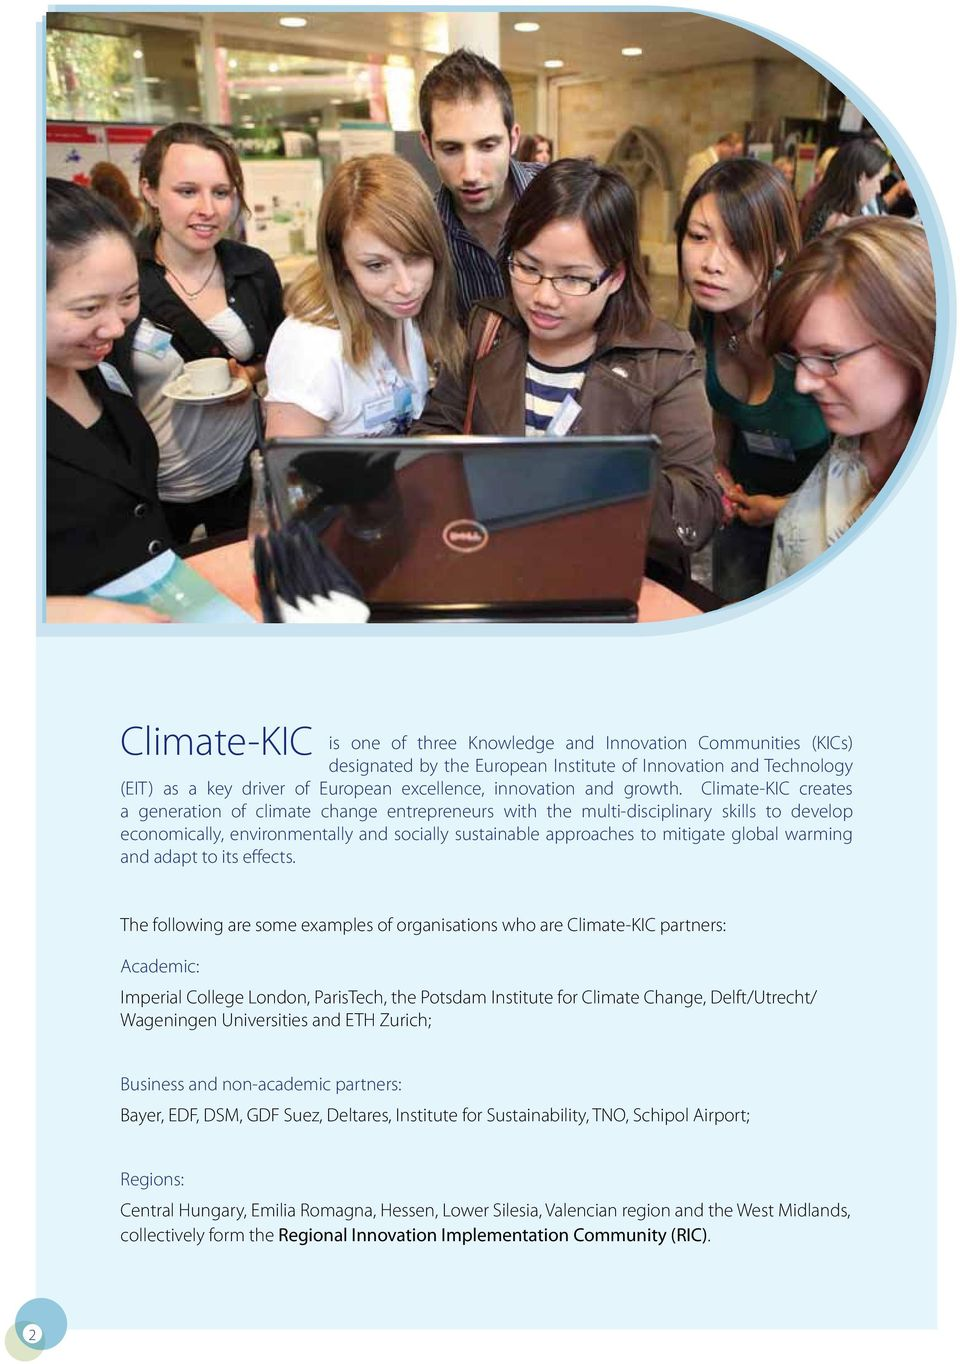 Climate-KIC creates a generation of climate change entrepreneurs with the multi-disciplinary skills to develop economically, environmentally and socially sustainable approaches to mitigate global